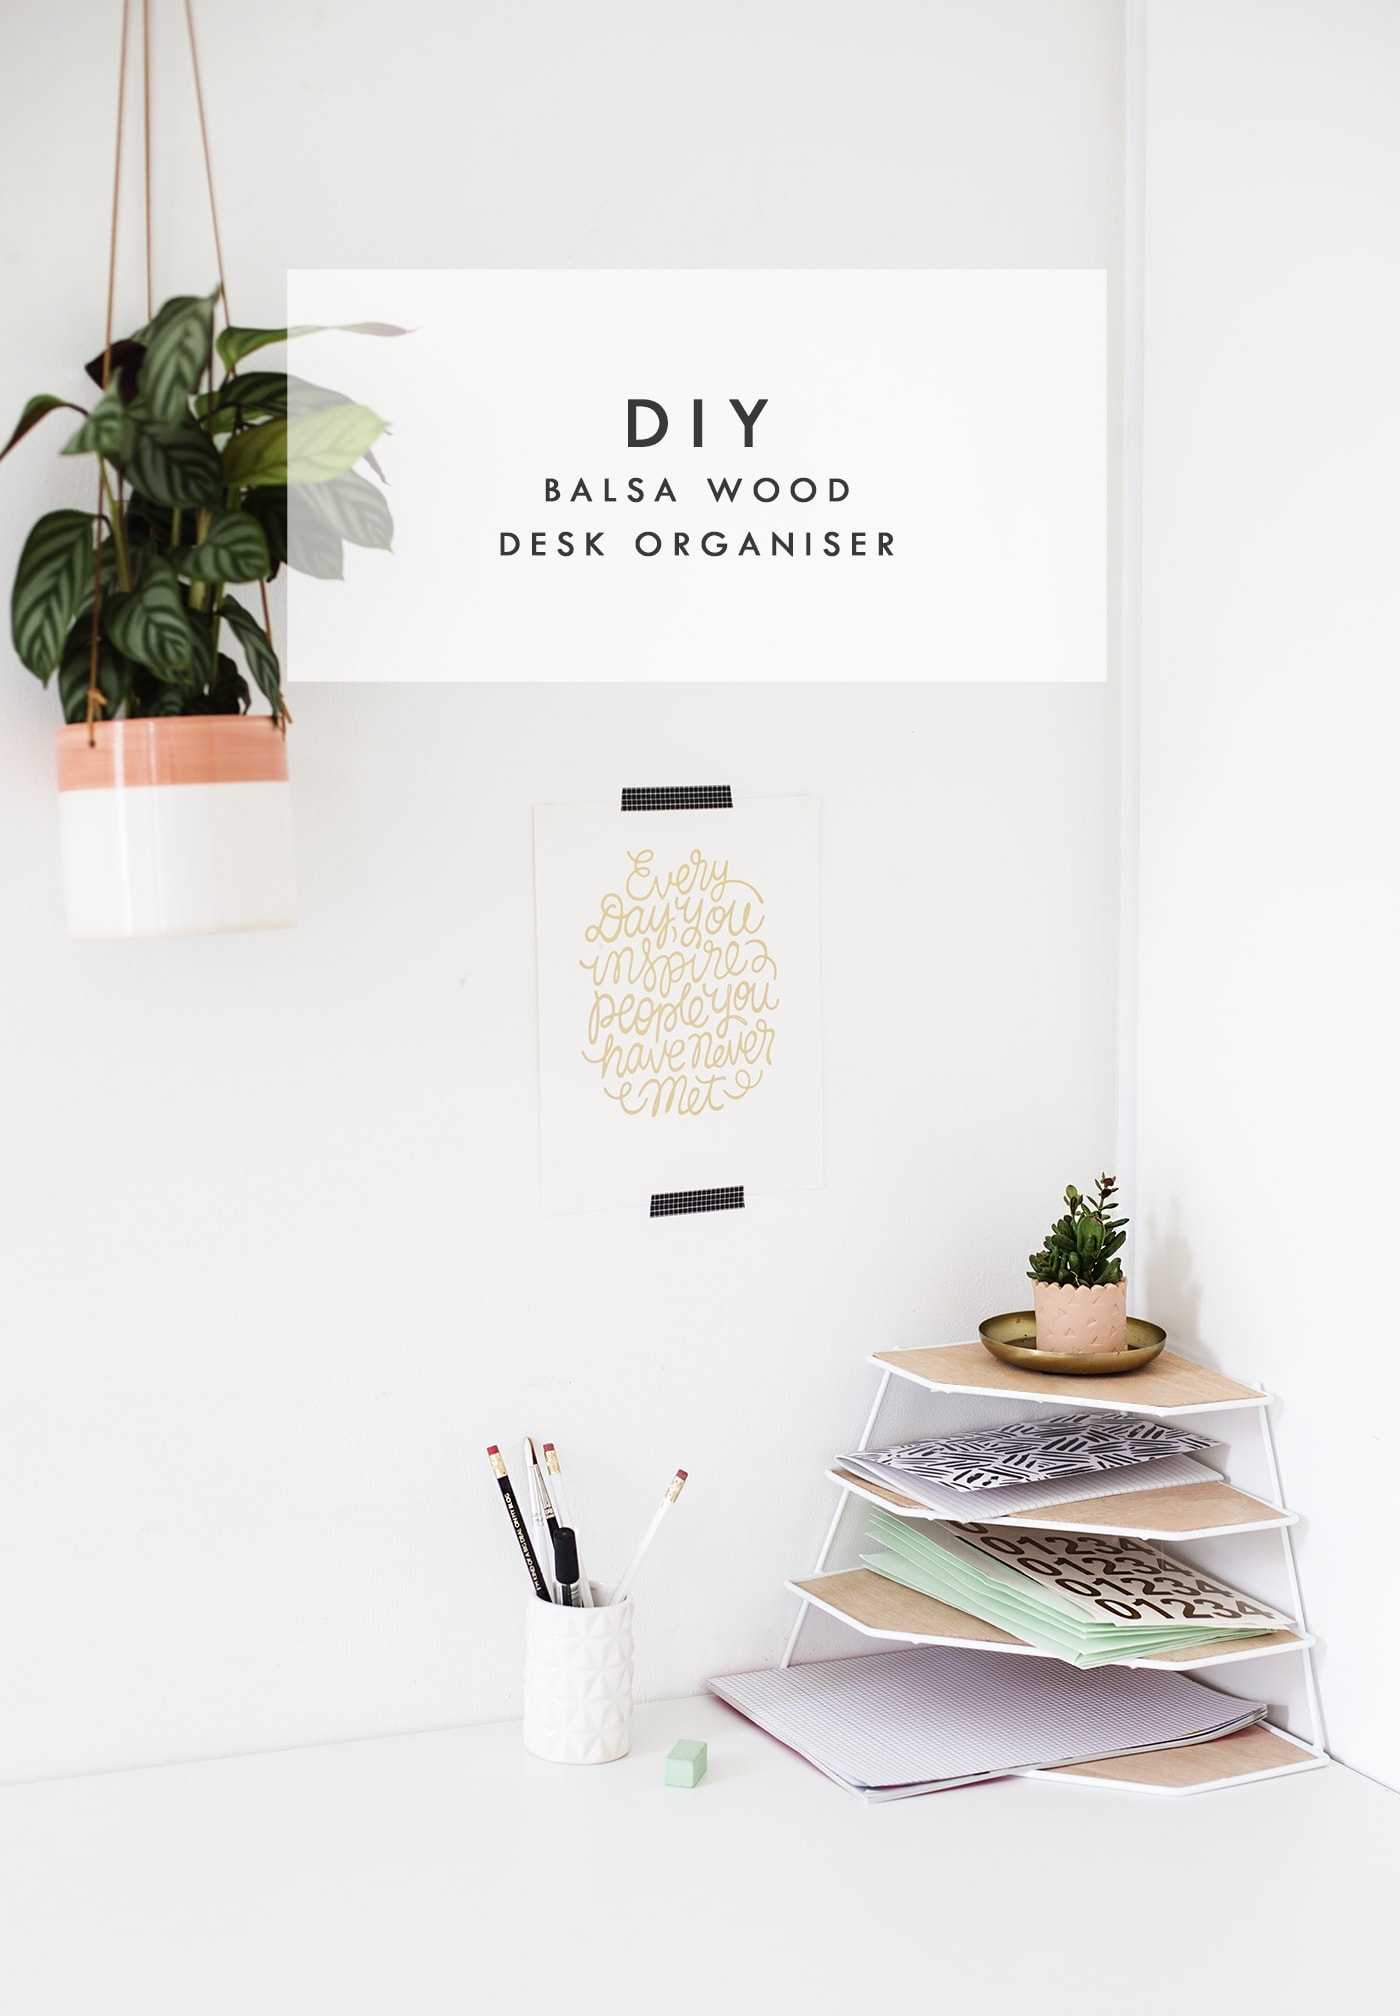 DIY balsa wood desk organiser for your wokspace | easy craft ideas